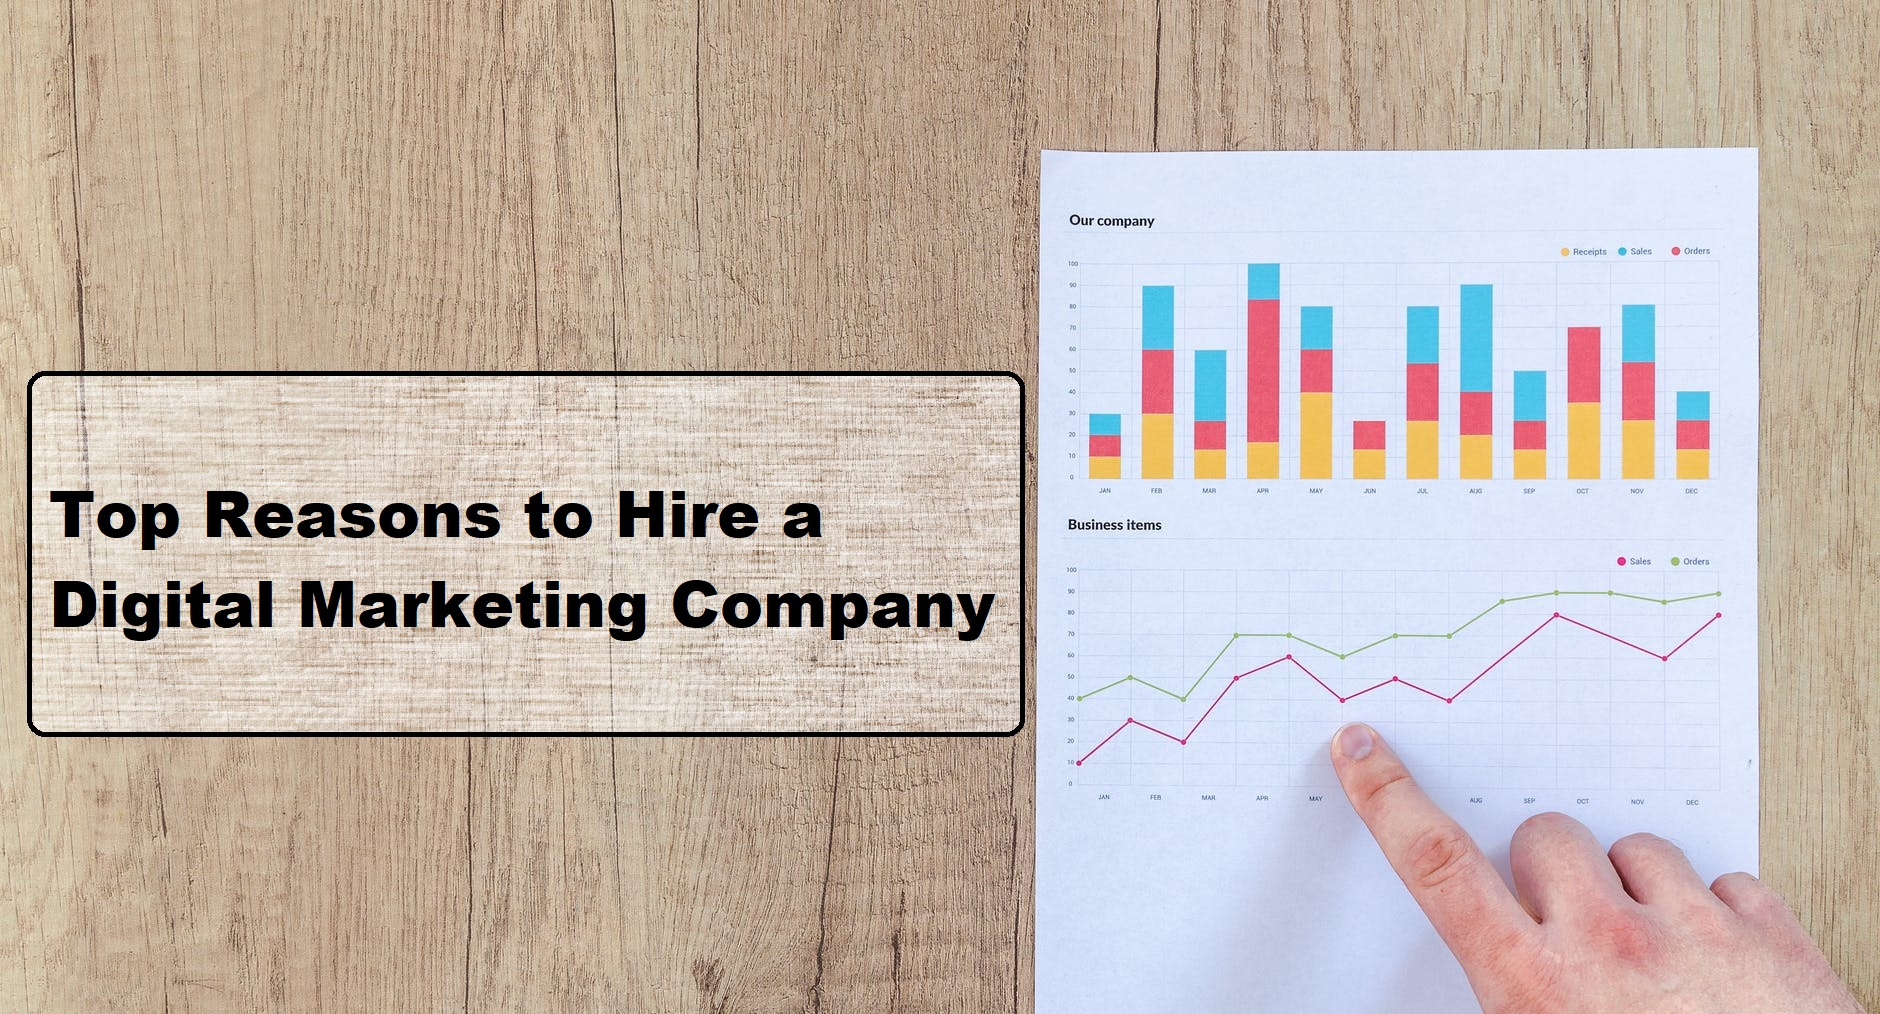 Top Reasons to Hire a Digital Marketing Company in Singapore